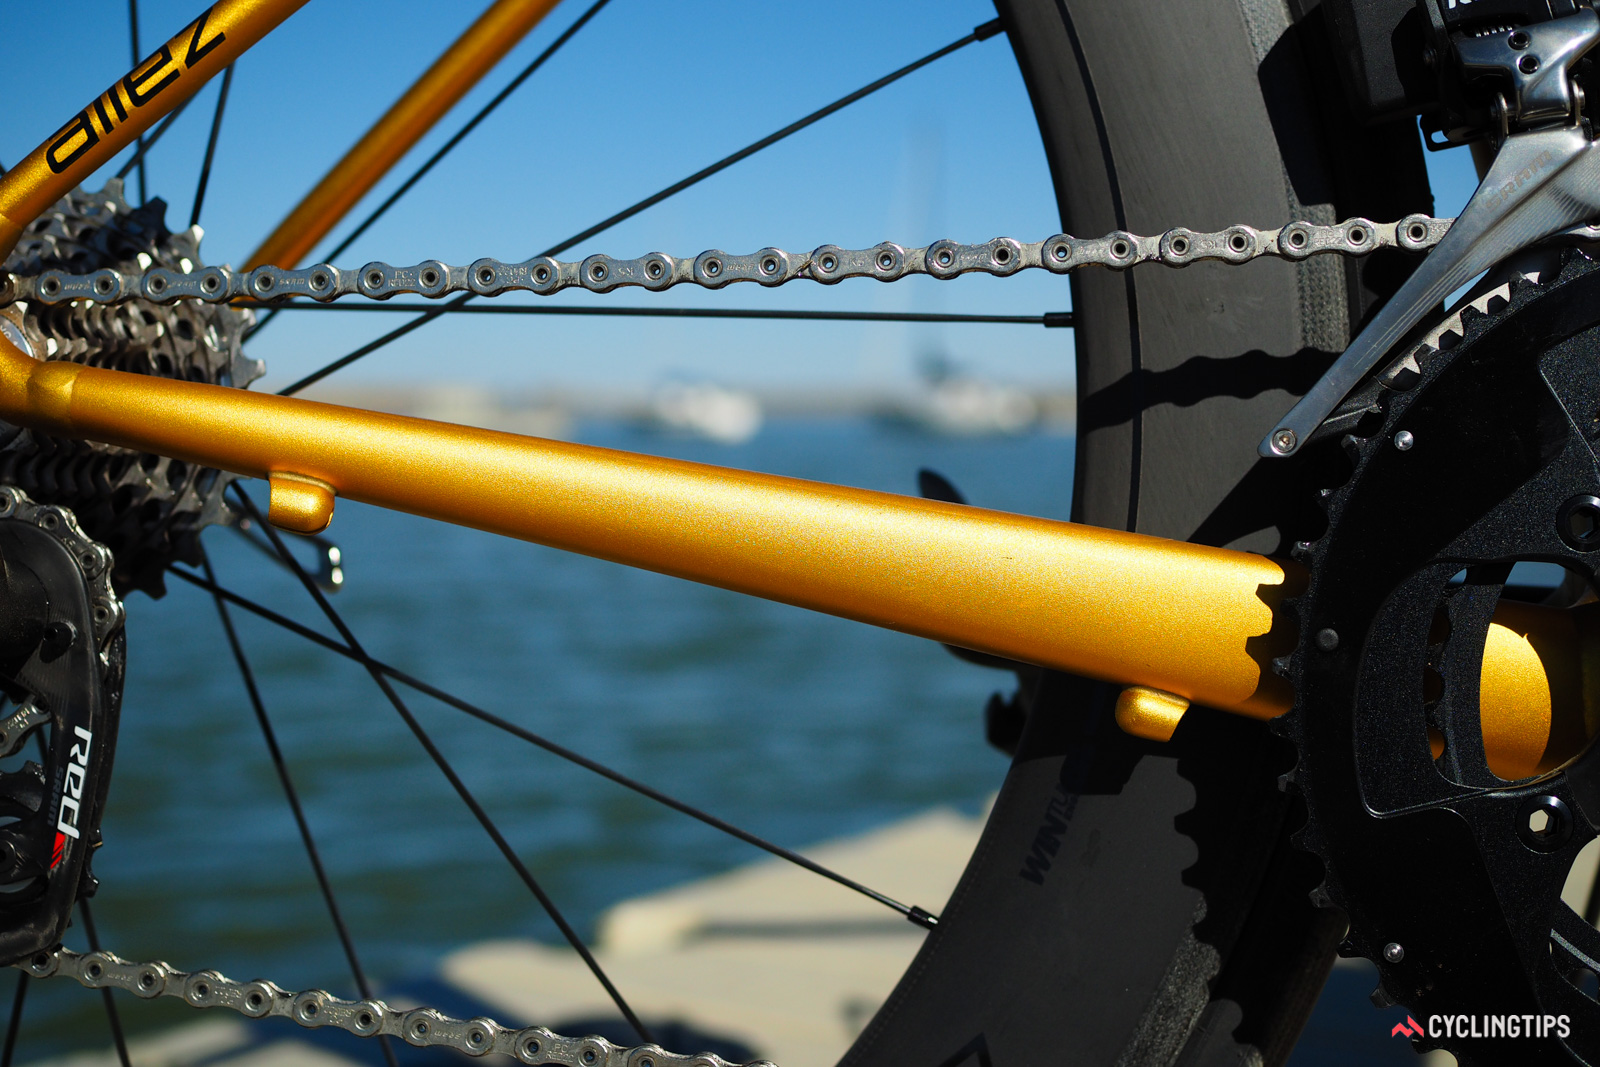 ...but there are still vestigial housing stops on both the chainstay and behind the seat tube.